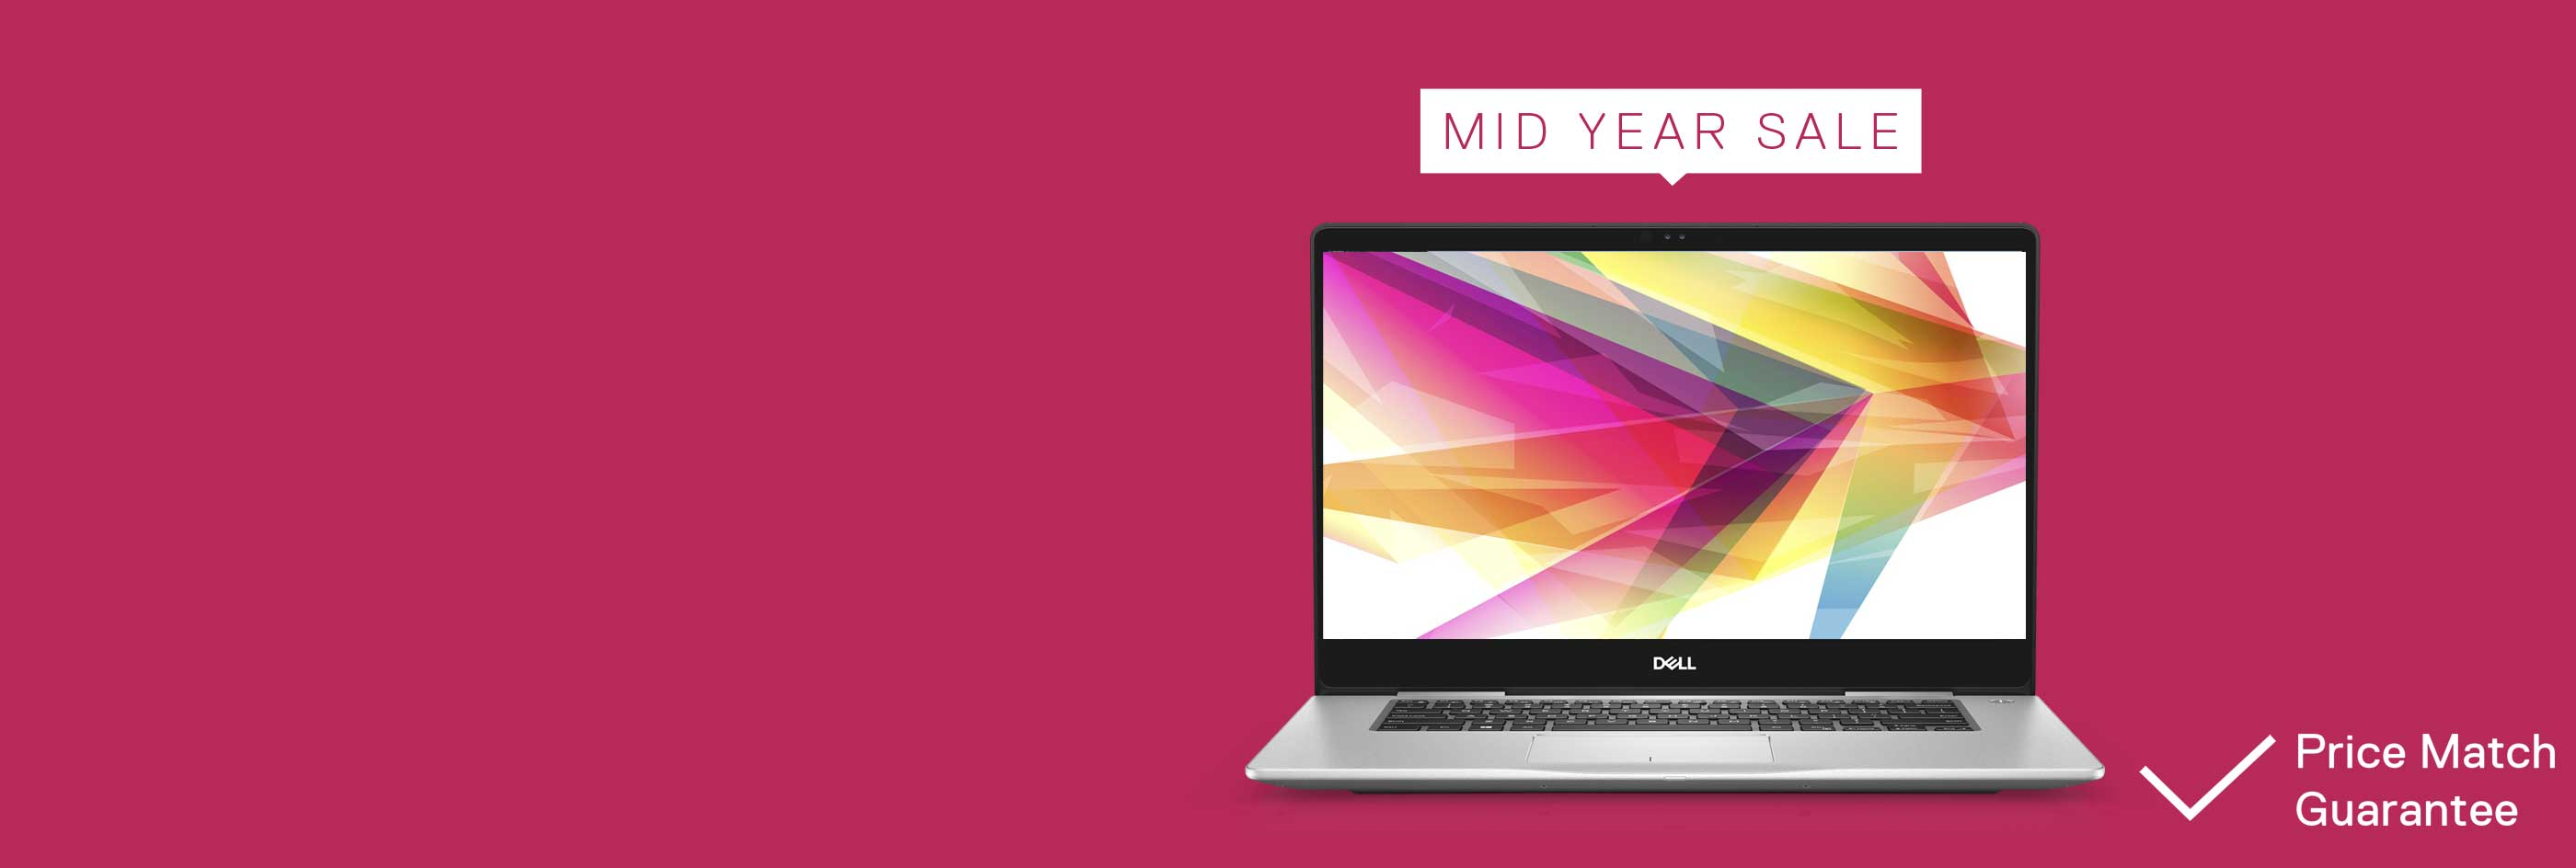 Mid Year Sale for Home: Up to 50% off selected laptops.